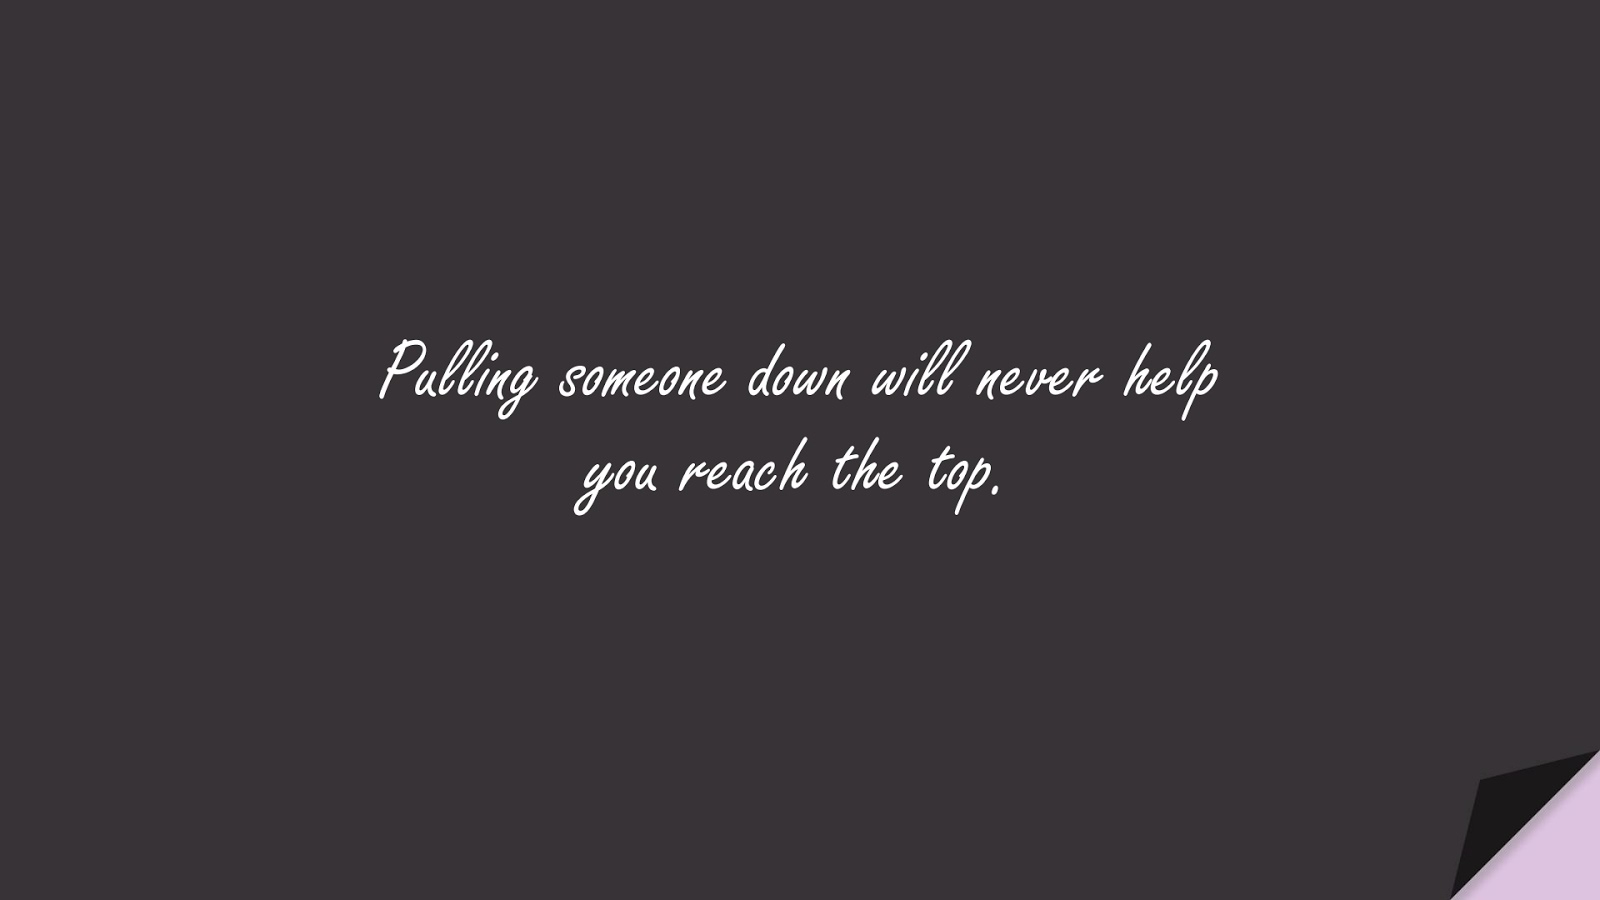 Pulling someone down will never help you reach the top.FALSE